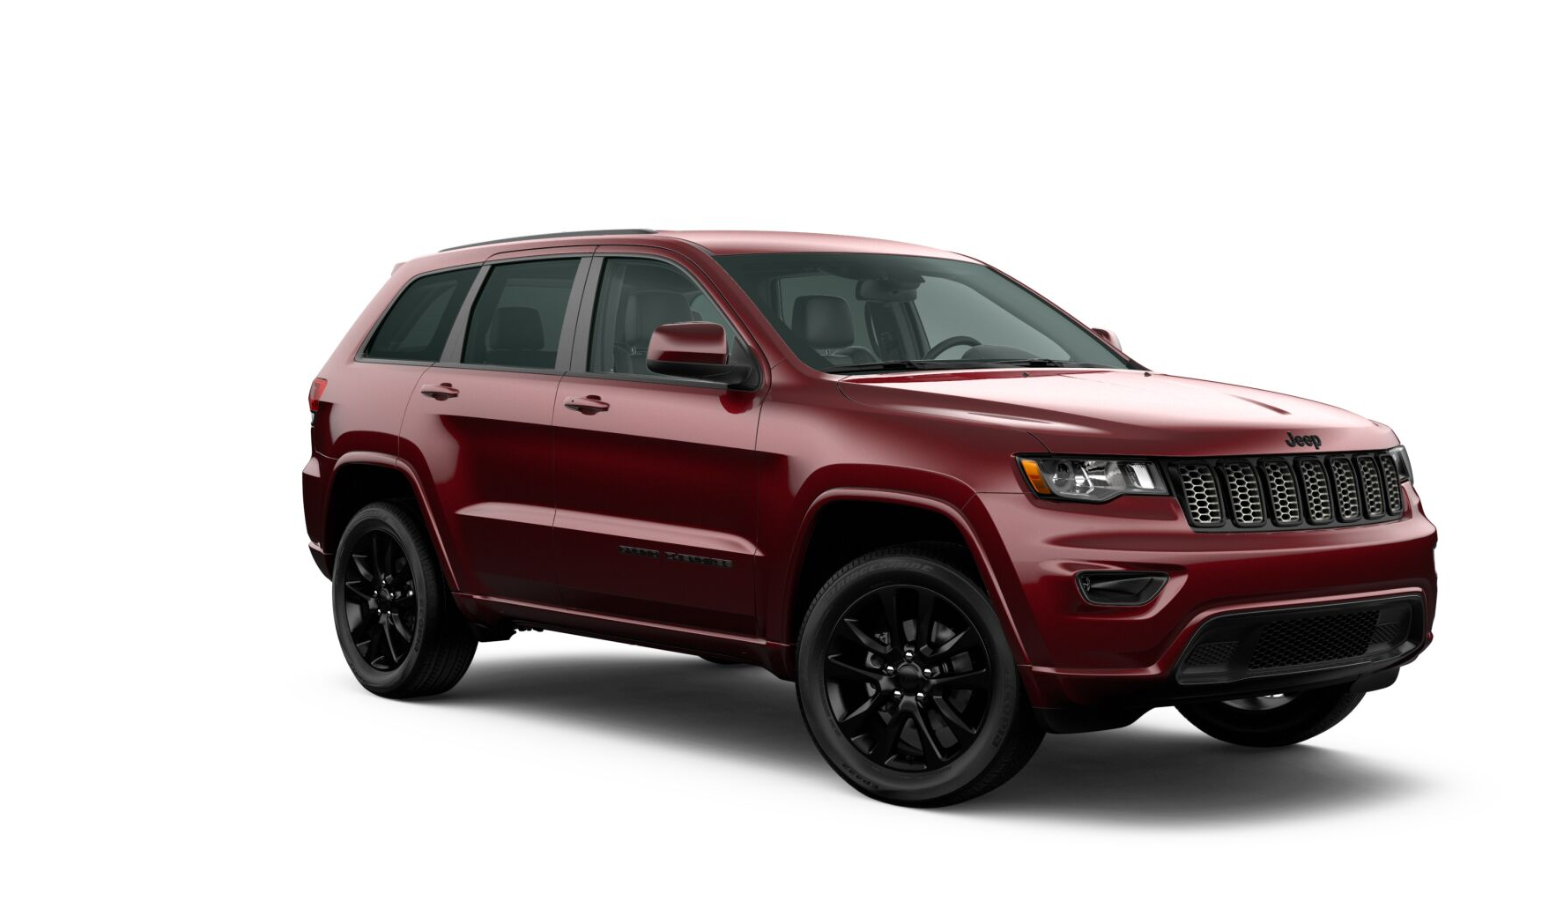 2020 Jeep Grand Cherokee Altitude Front View Red Exterior Picture